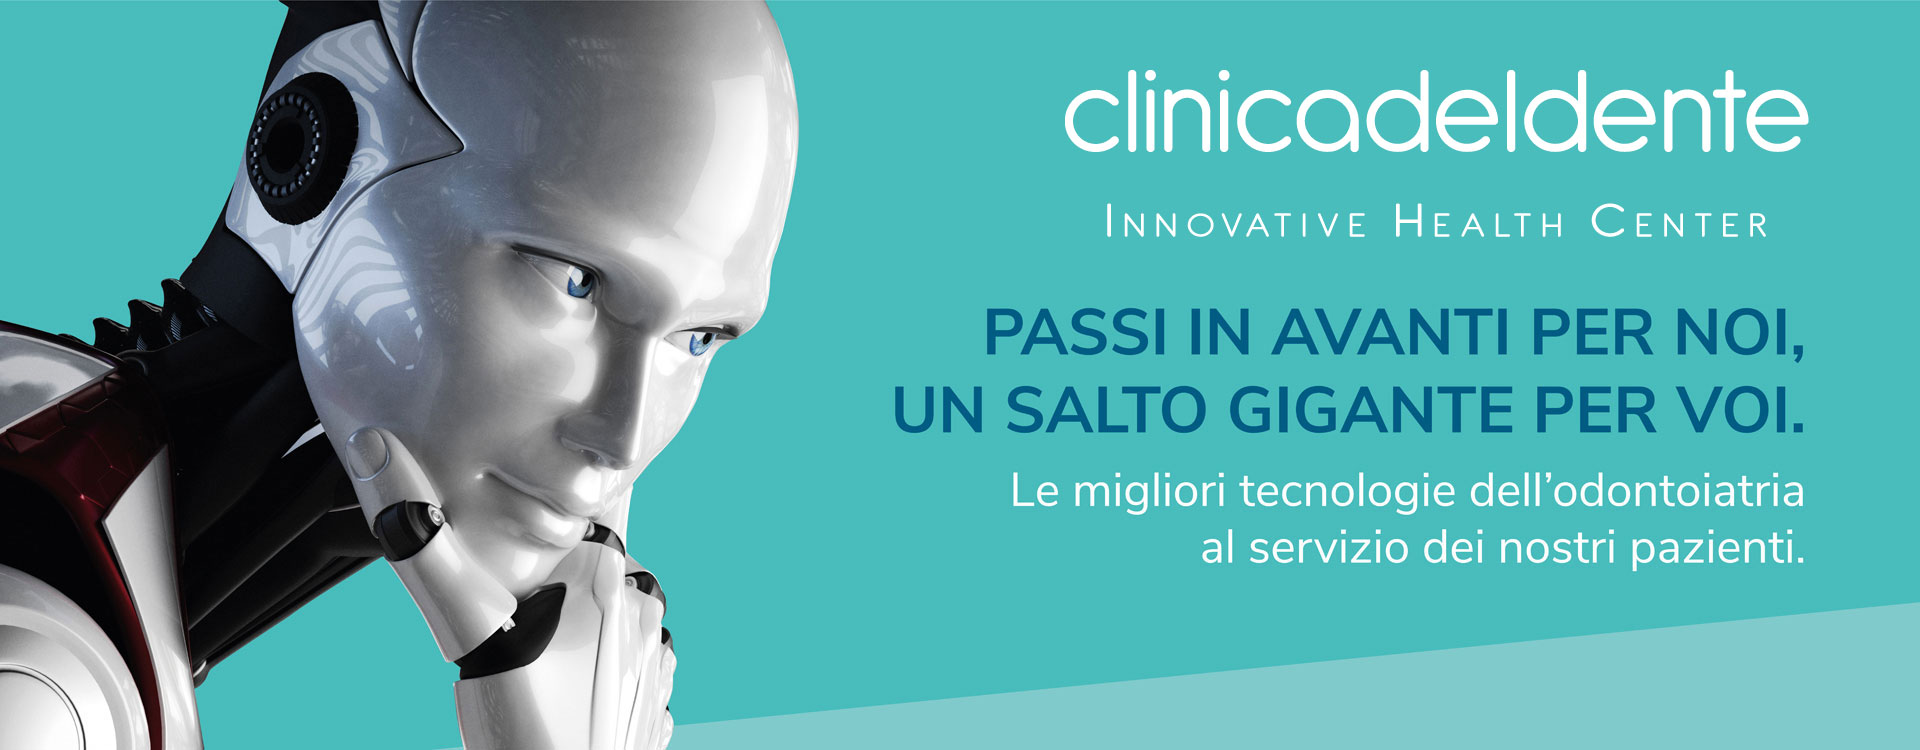 clinica_del_dente_slider_2